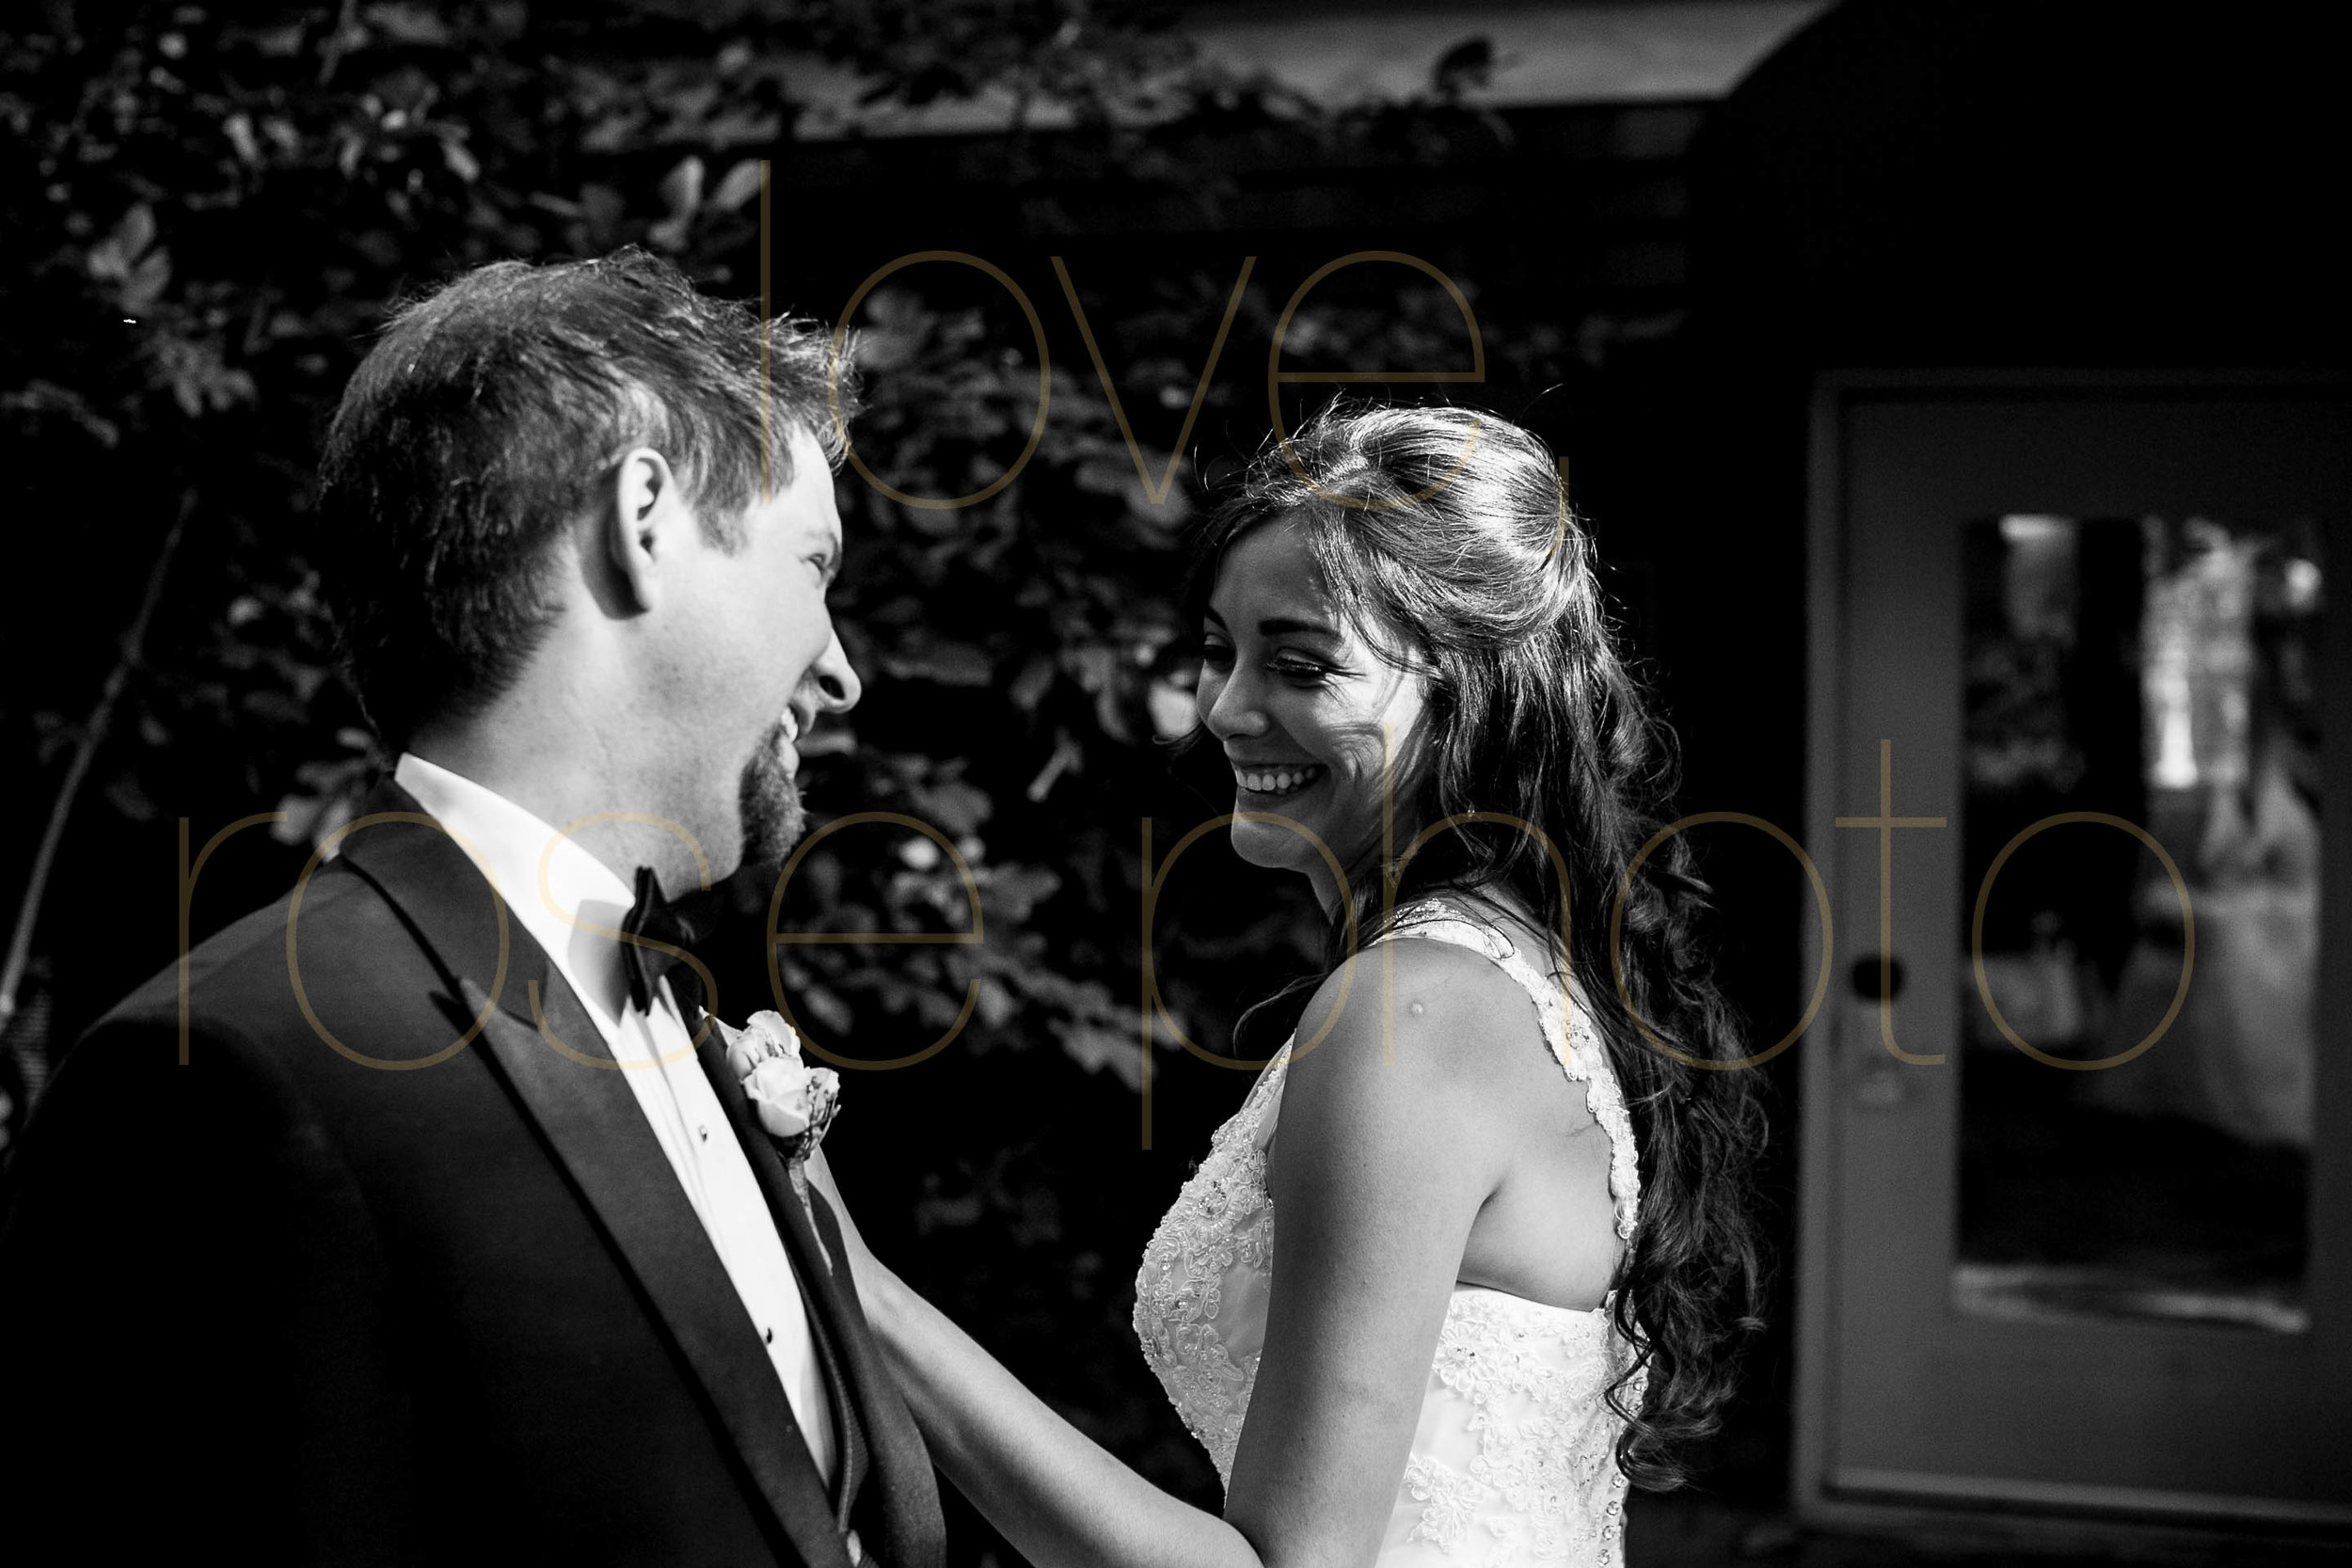 Claudia + Grant Heidel House Wiscon lake wedding best of chicago wedding photographers -31.jpg